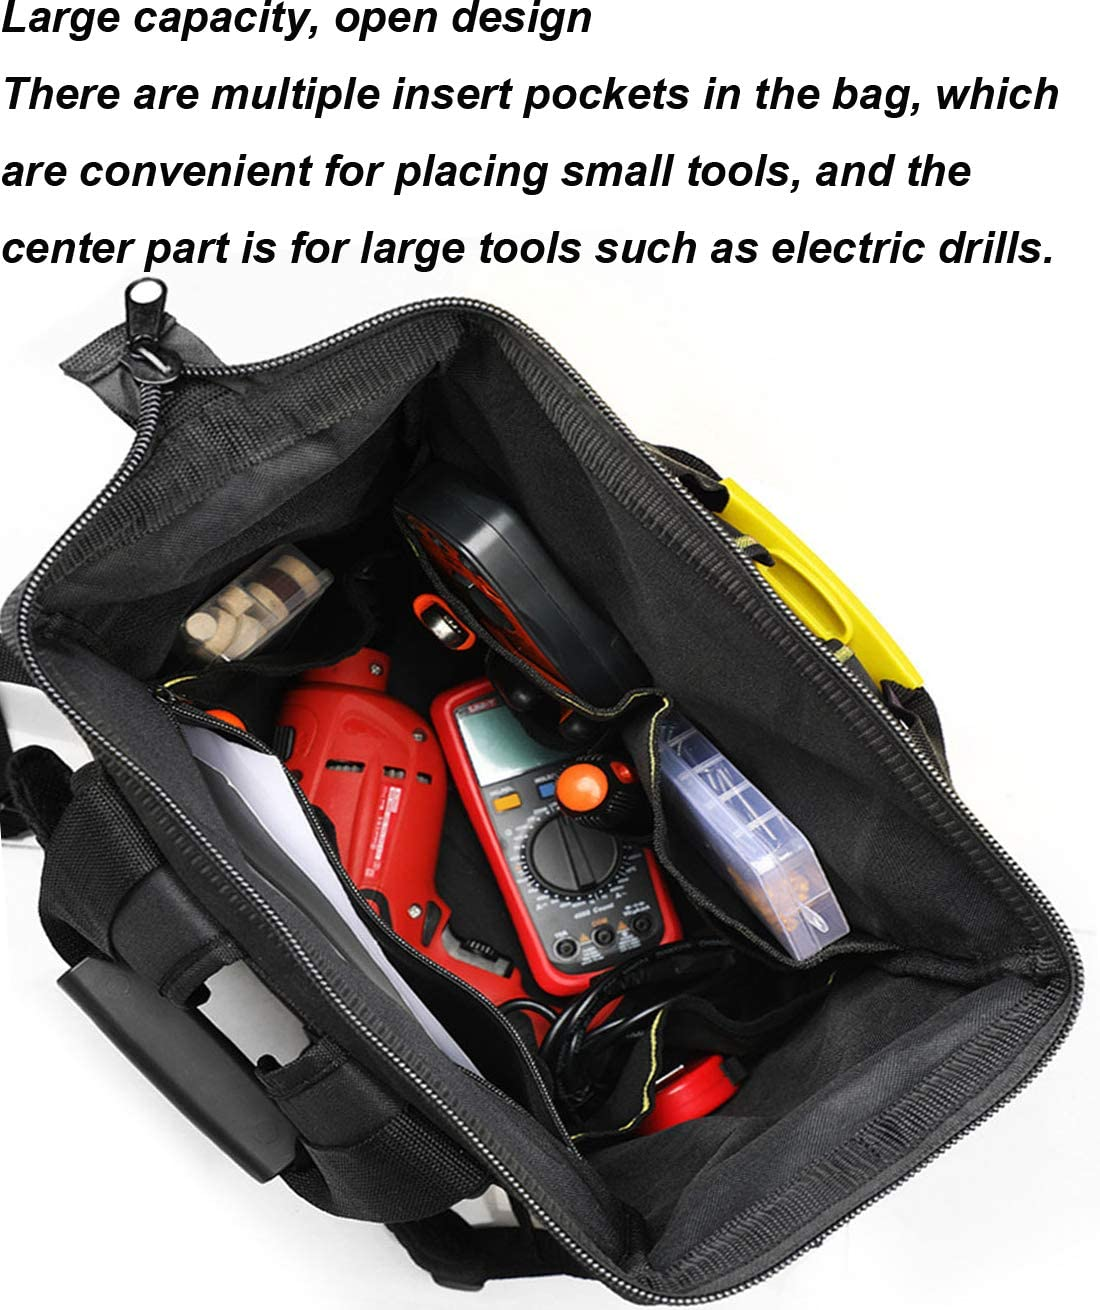 Tool Bag with Water Proof Molded Base,Tool Bags Organiser Muti-Purpose Wide Open Mouth Storage Bag with Adjustable Shoulder Strap,C B